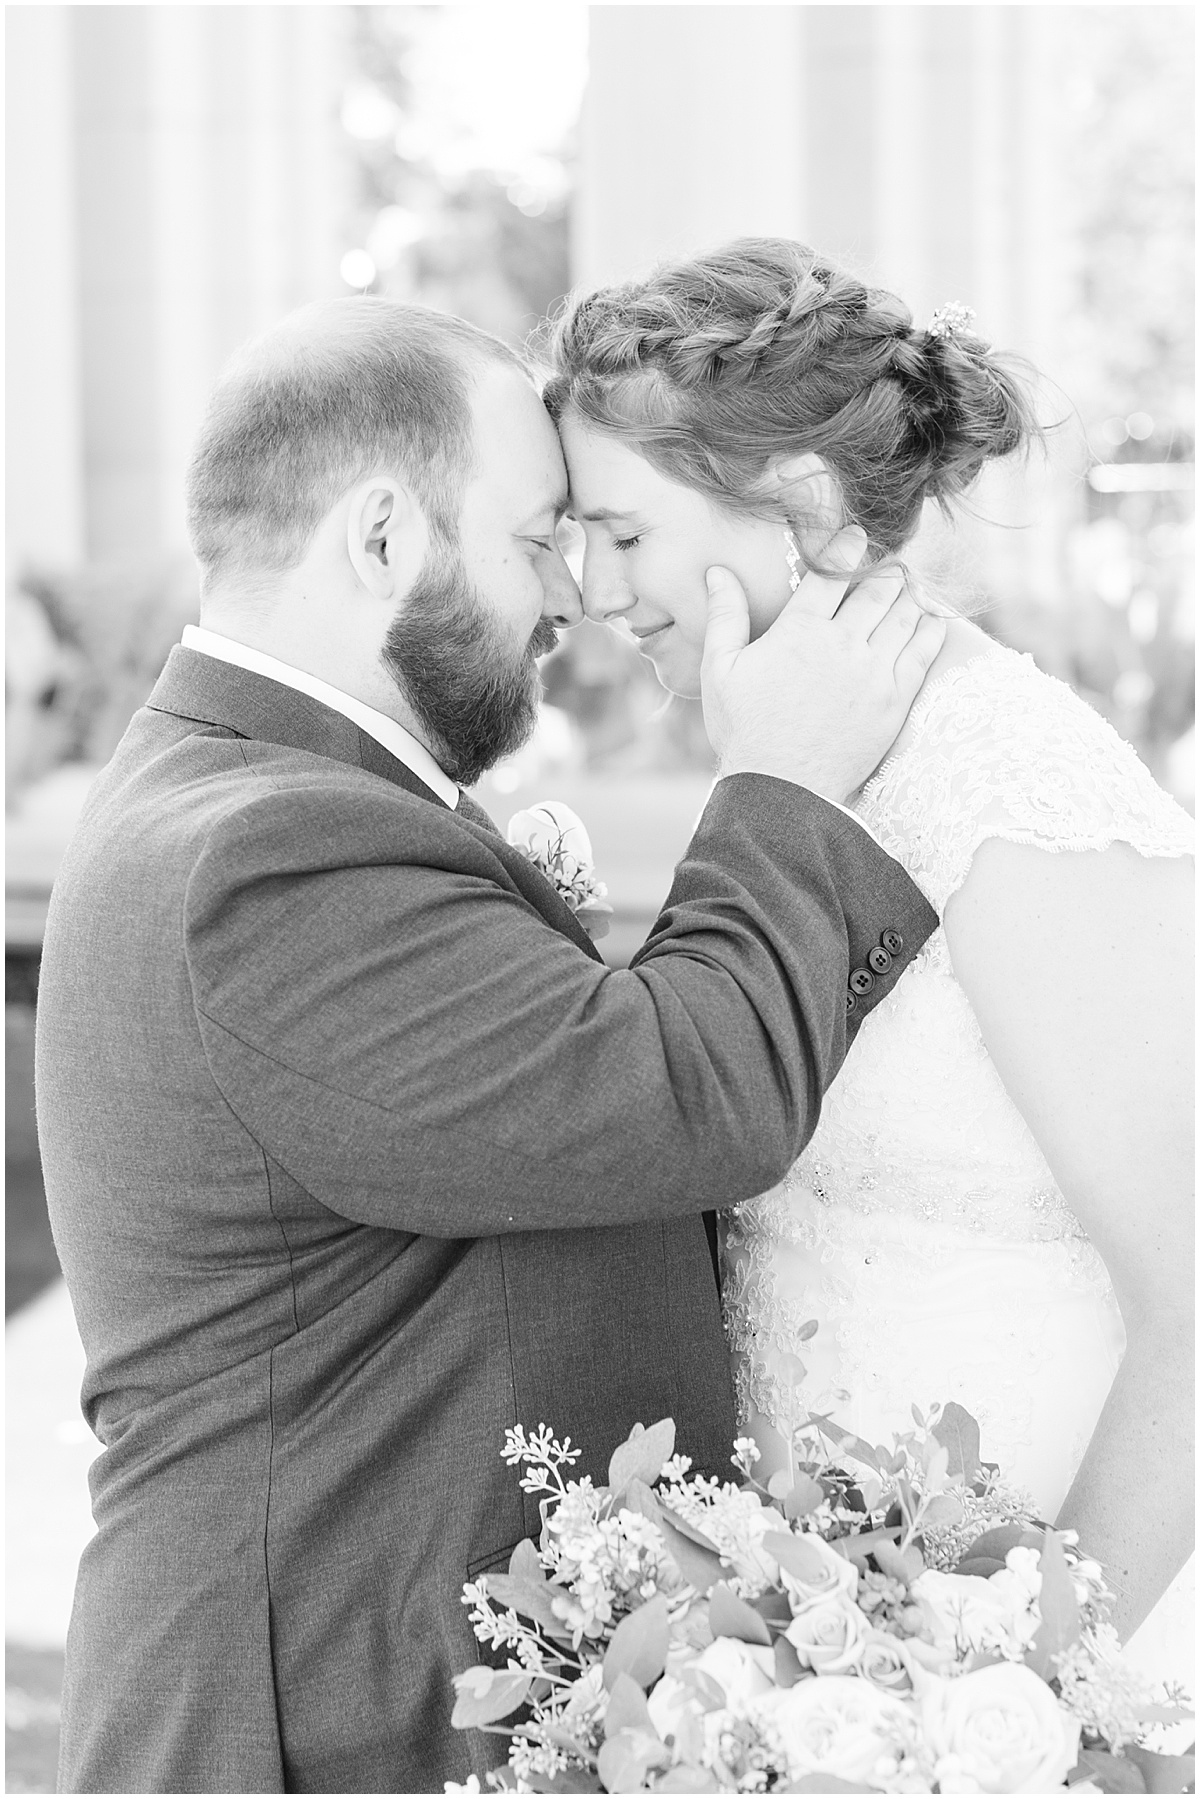 Just married photos after intimate wedding at Holliday Park in Indianapolis by Victoria Rayburn Photography